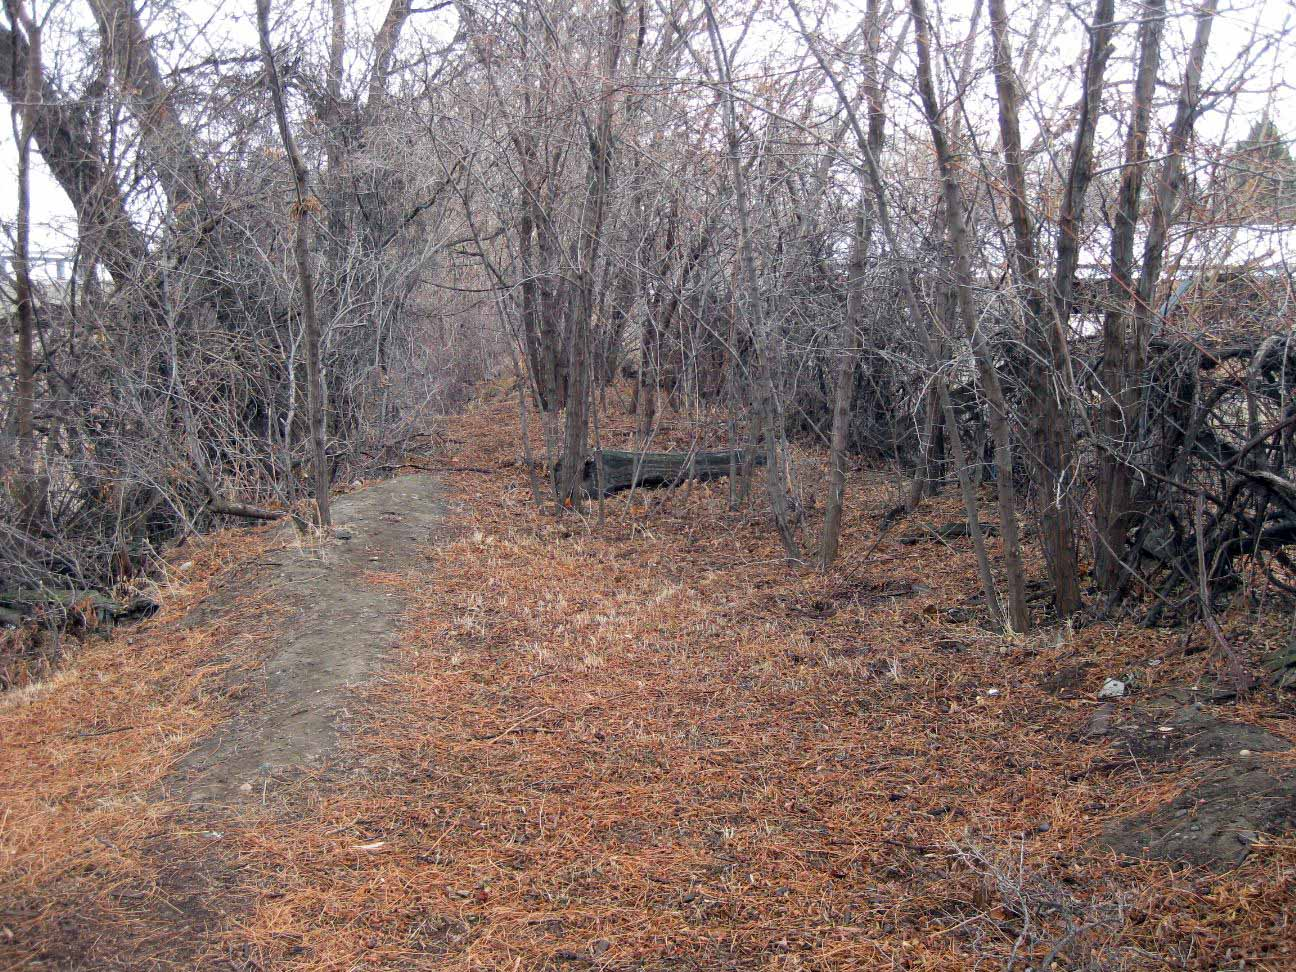 Overgrown treens and brush prior to clean up for pond trail construction.